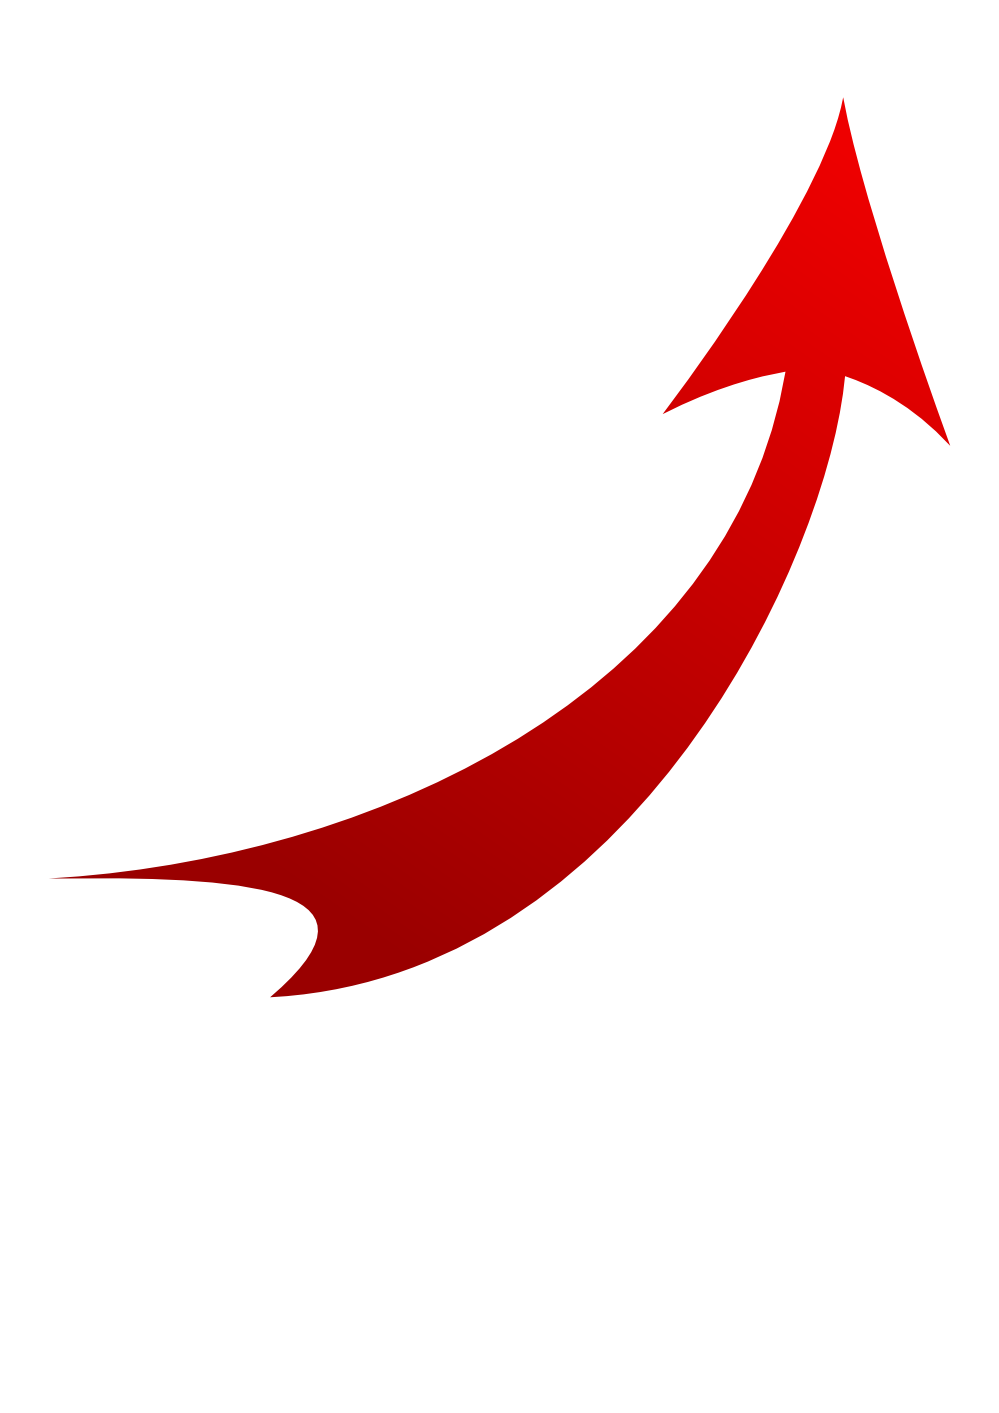 Arrow with curved clipart clip art free Red Curved Arrow - Cliparts.co clip art free